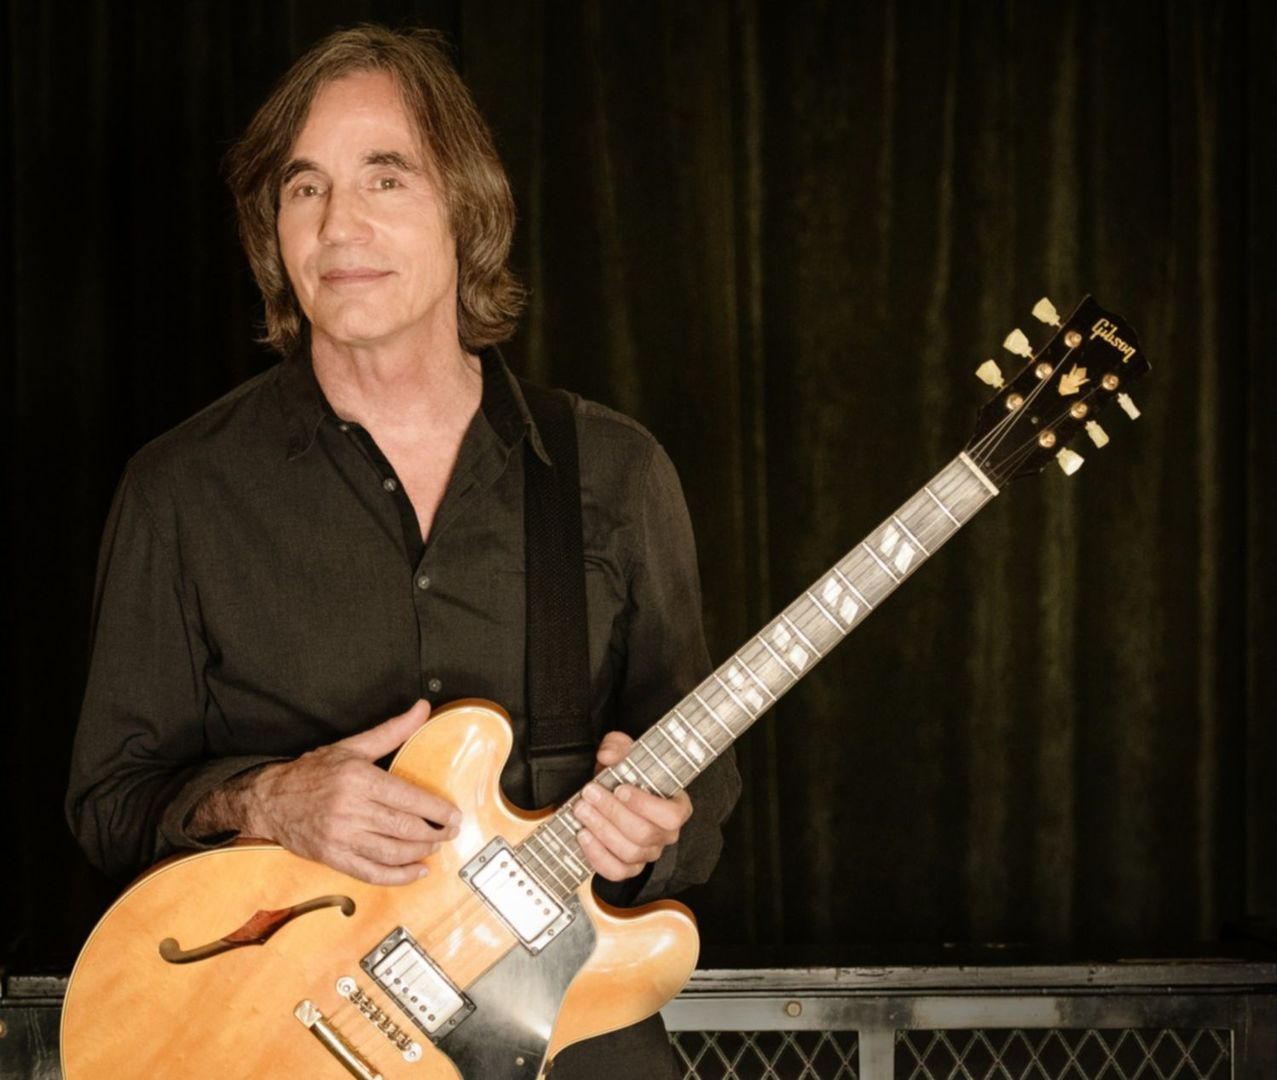 Jackson Browne Photo by Nels Israelson